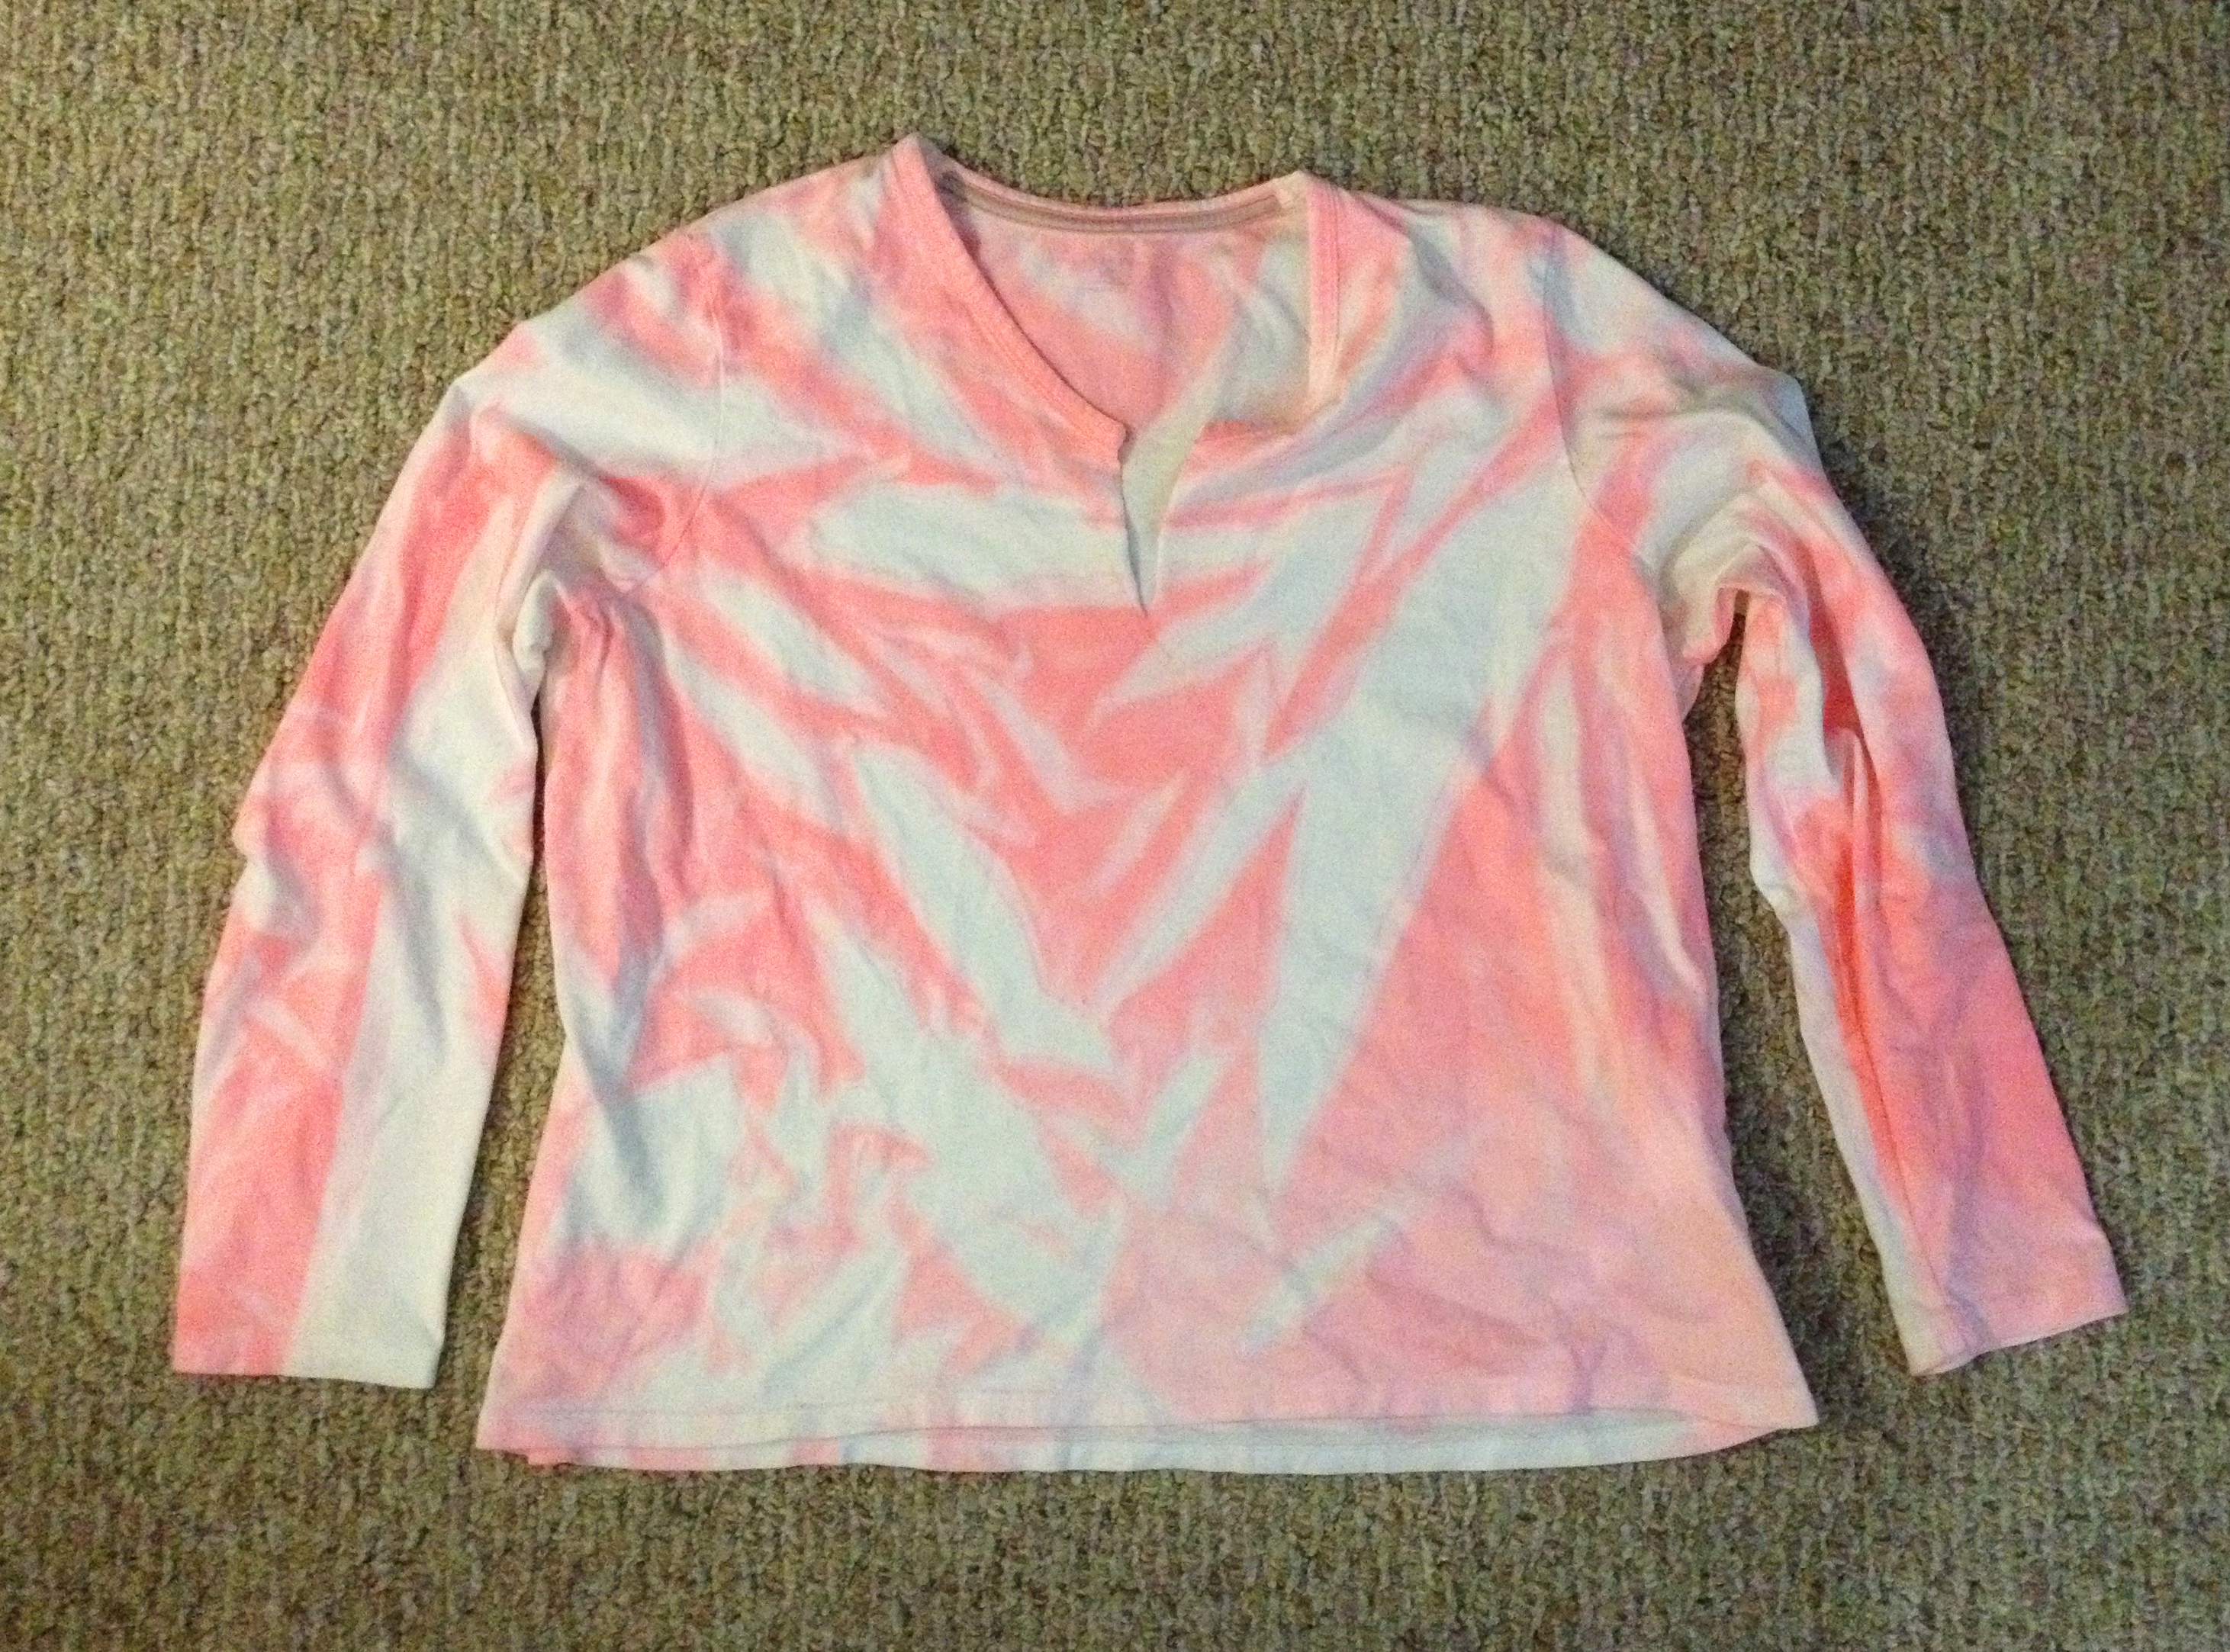 Making a pink tie dye costume with fabric spray paint - How to get exterior paint out of clothes ...